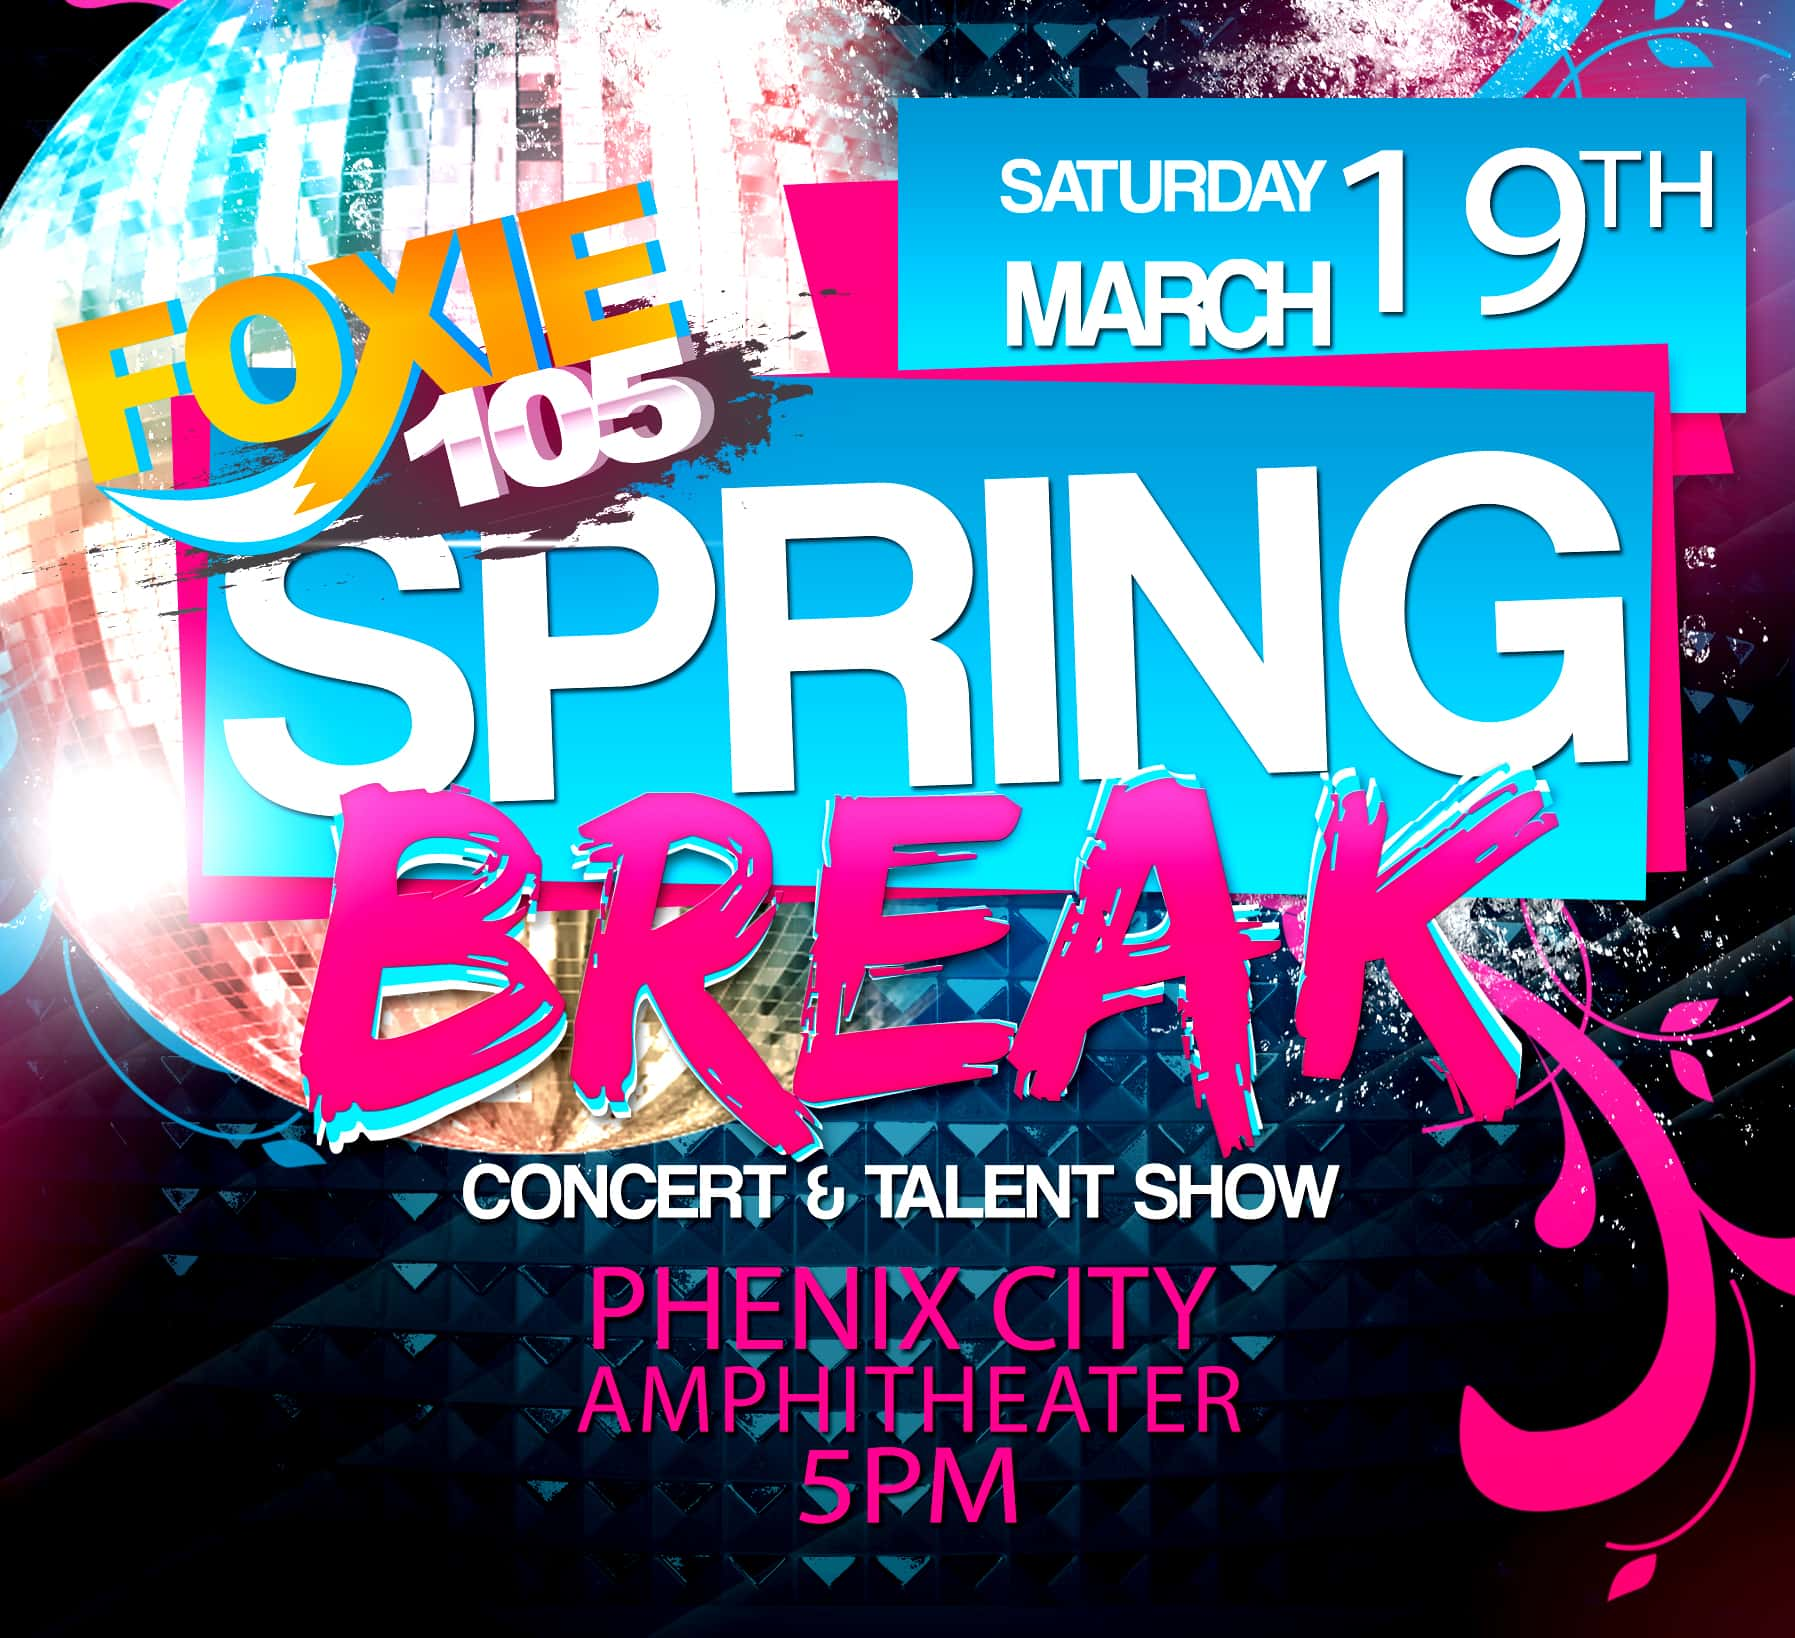 foxie 105 spring break concert and talent show